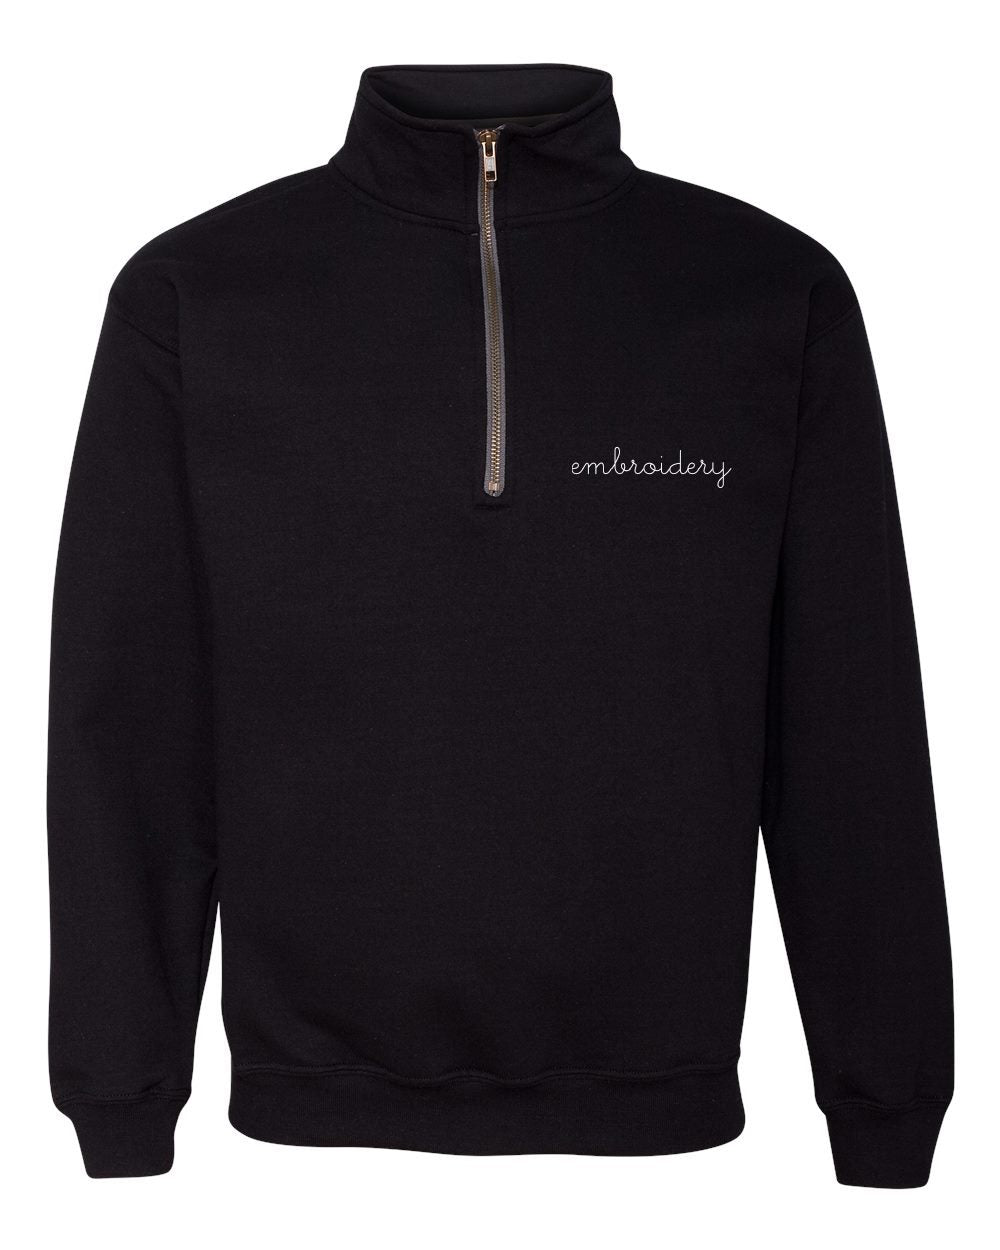 Adult Half Zip Fleece (Unisex) juju + stitch Adult S / Black custom personalized script embroidered half-zip fleece sweatshirt